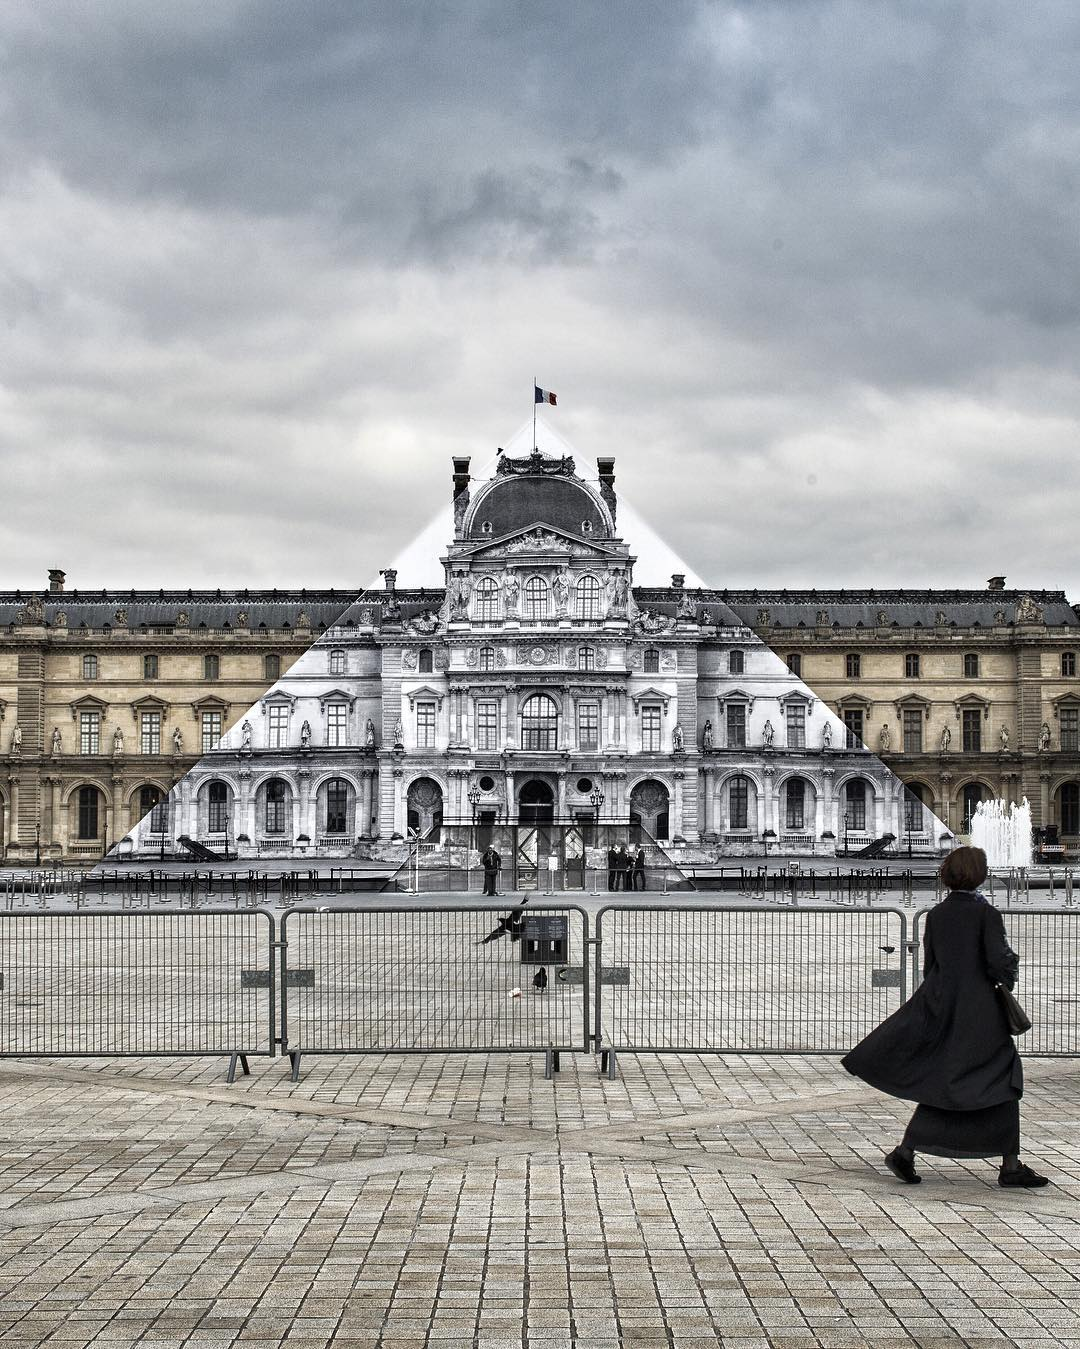 Artist JR hides the Louvre Pyramid